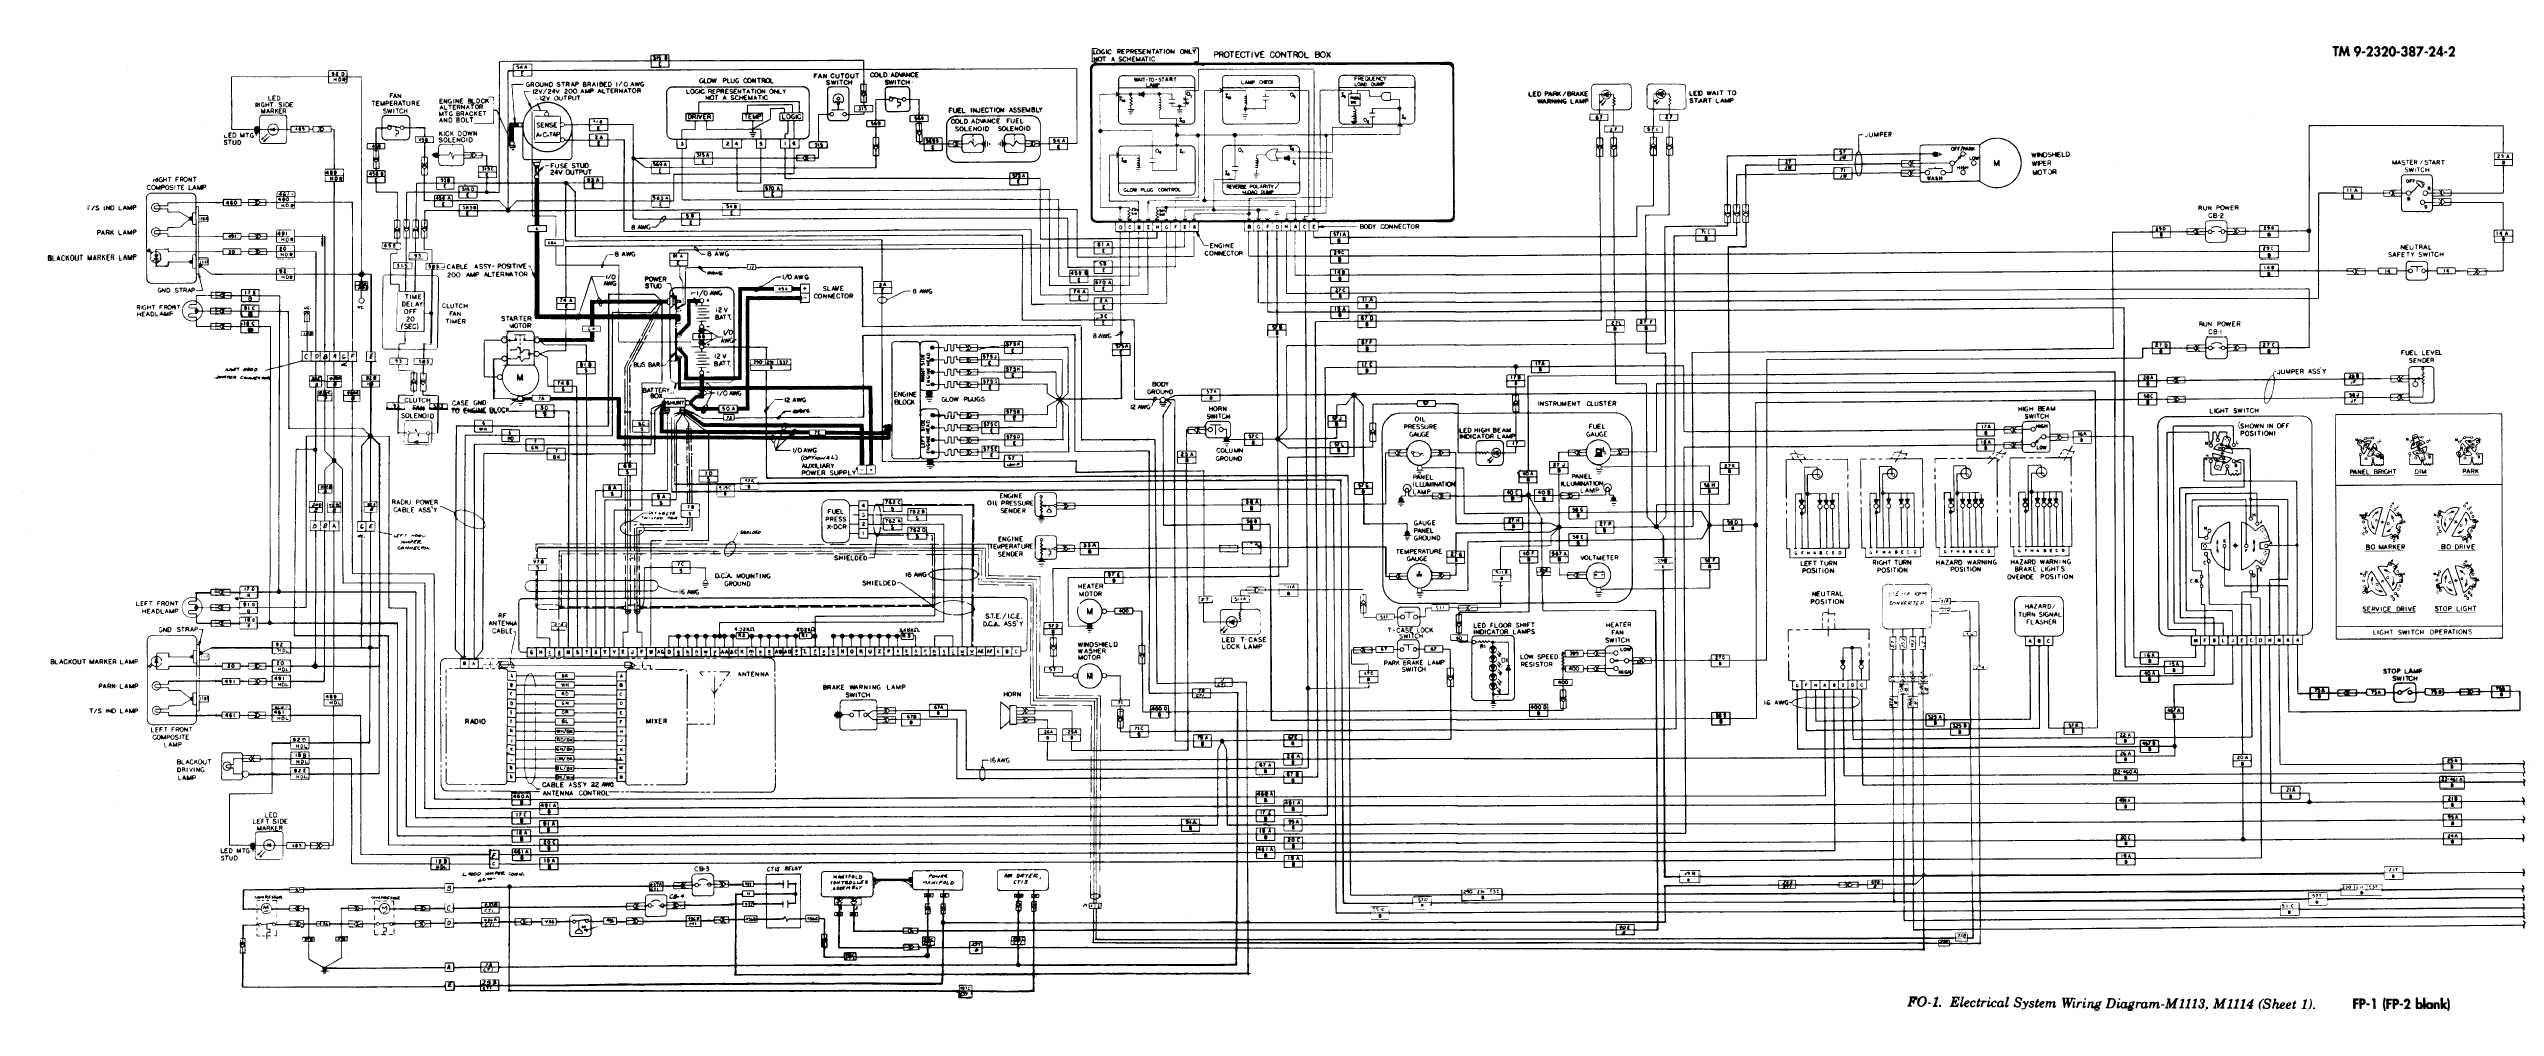 System Wiring Diagram - DIY Enthusiasts Wiring Diagrams •